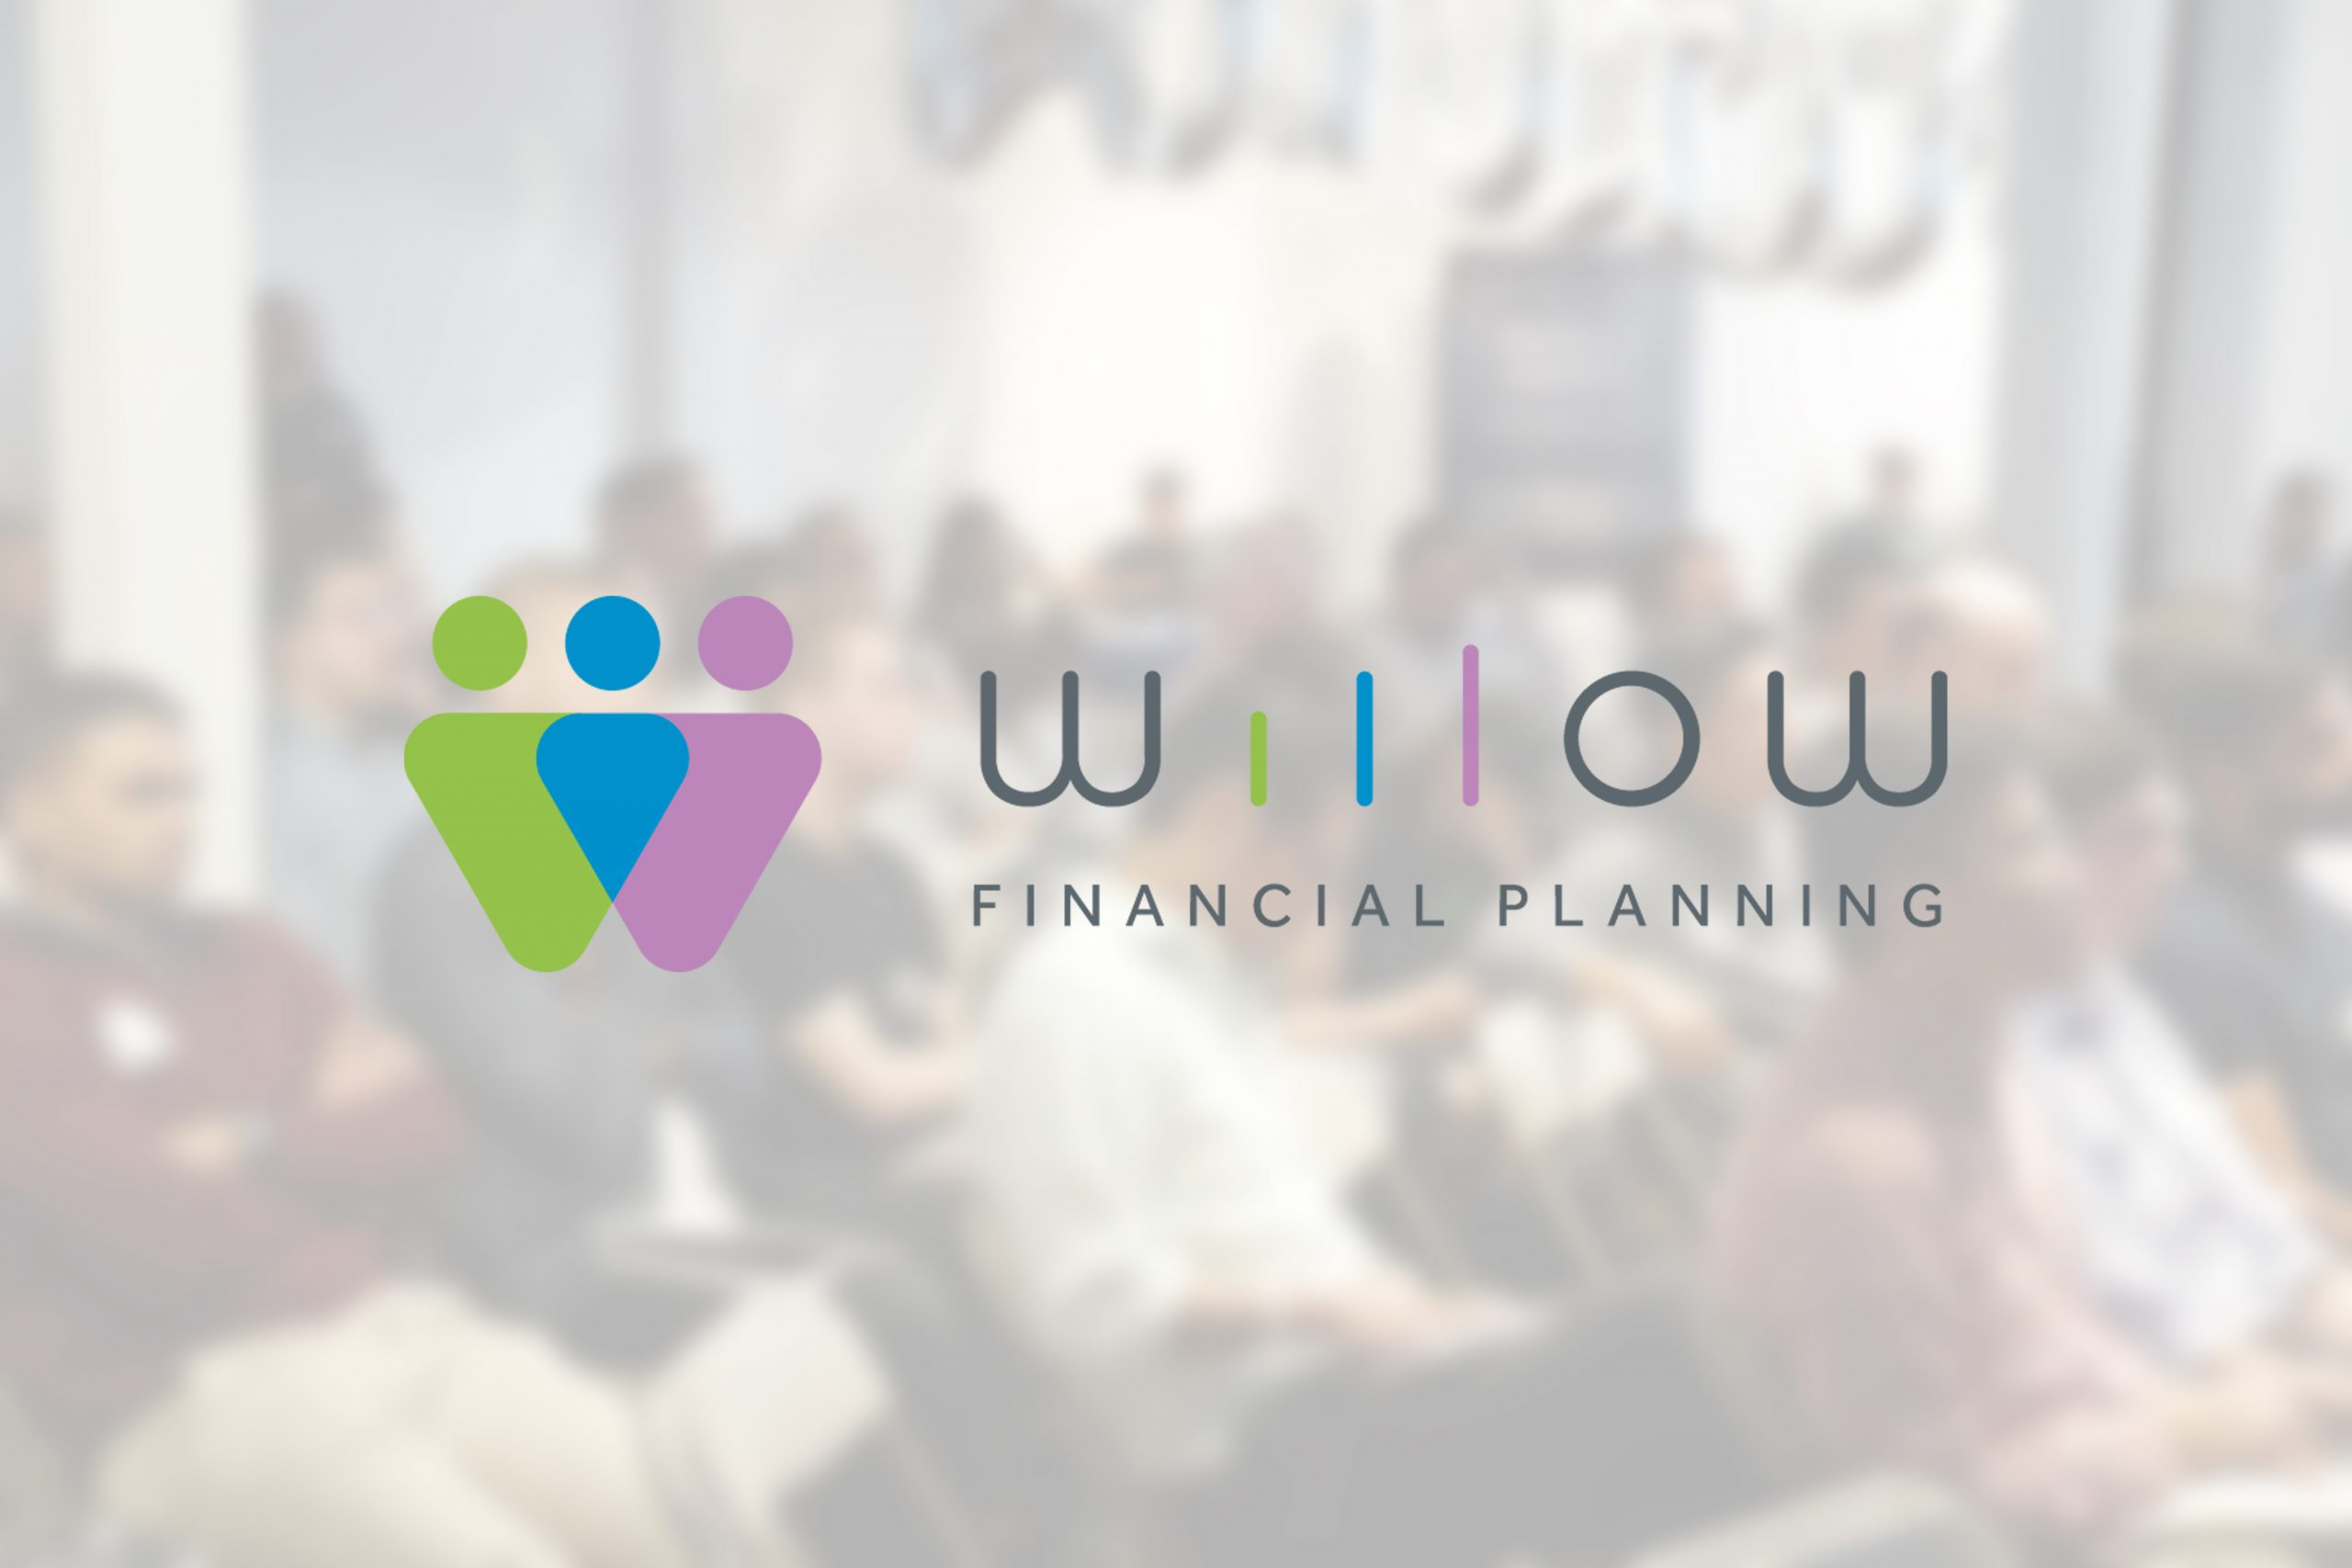 willow financial planning